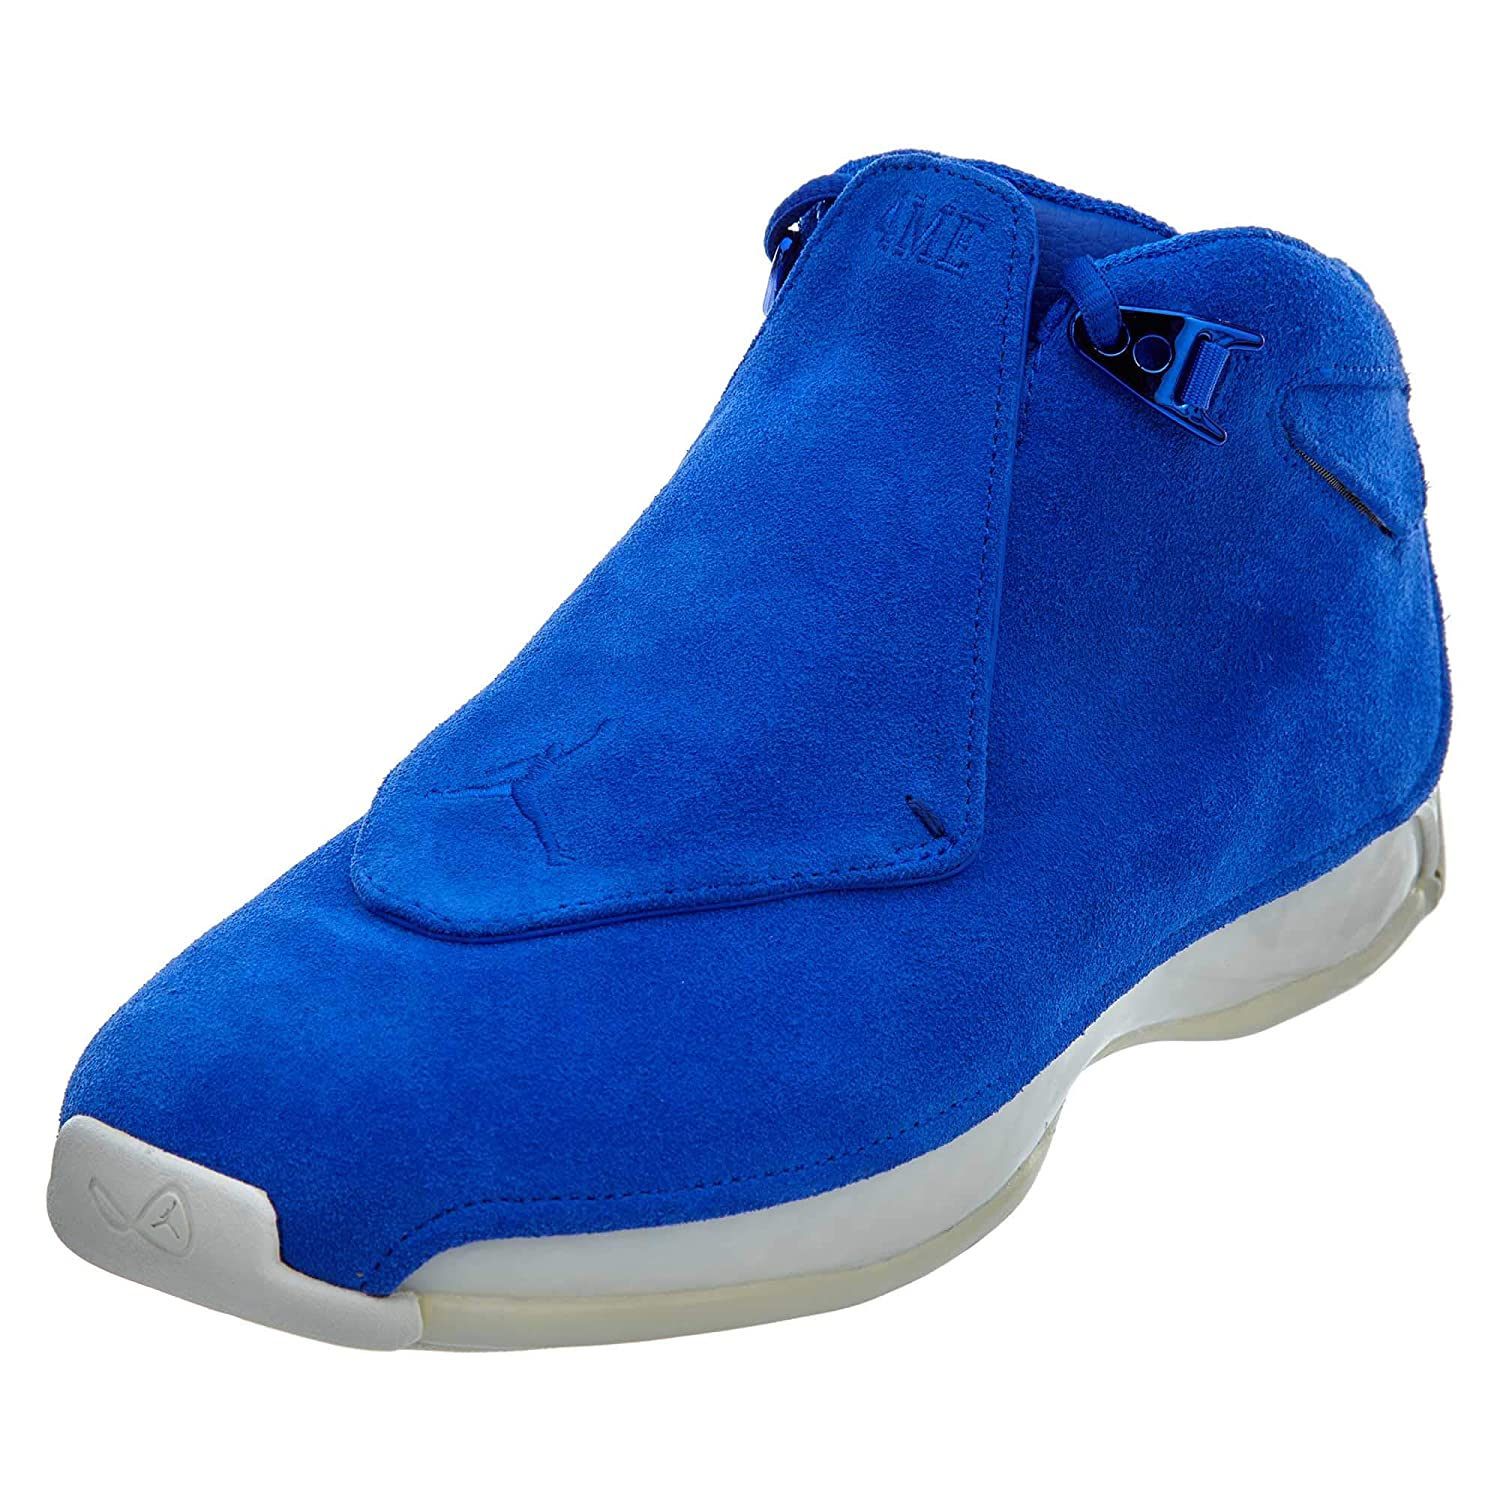 - Nike AIR Jordan 18 Retro 'bluee Suede' - AA2494-401